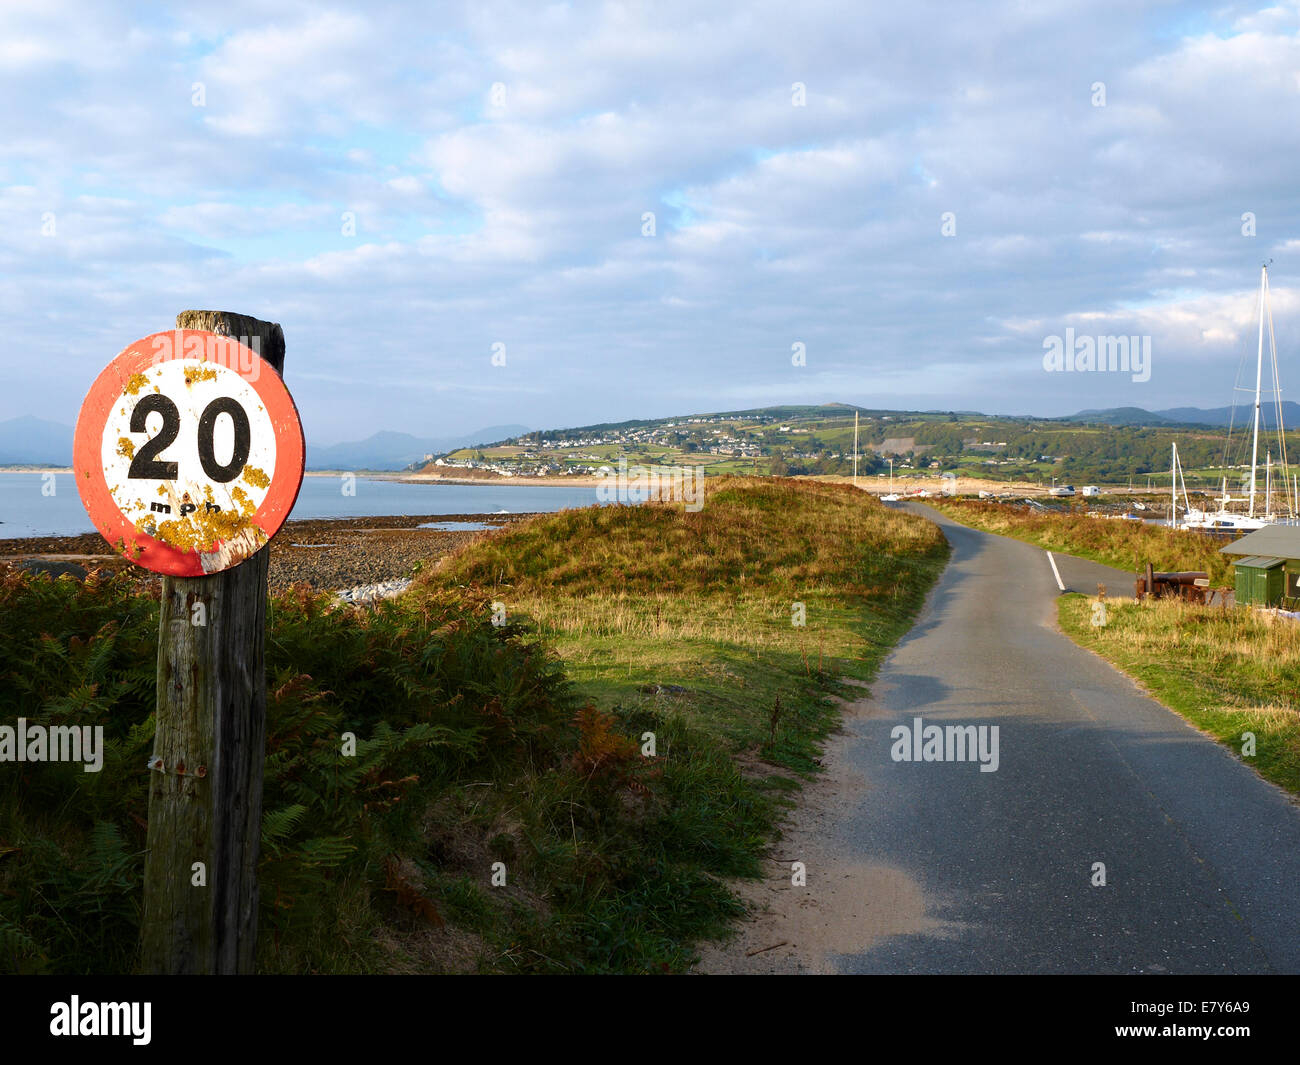 Homemade 20 MPH sign on Shell Island campsite with Harlech in the distance Wales UK - Stock Image